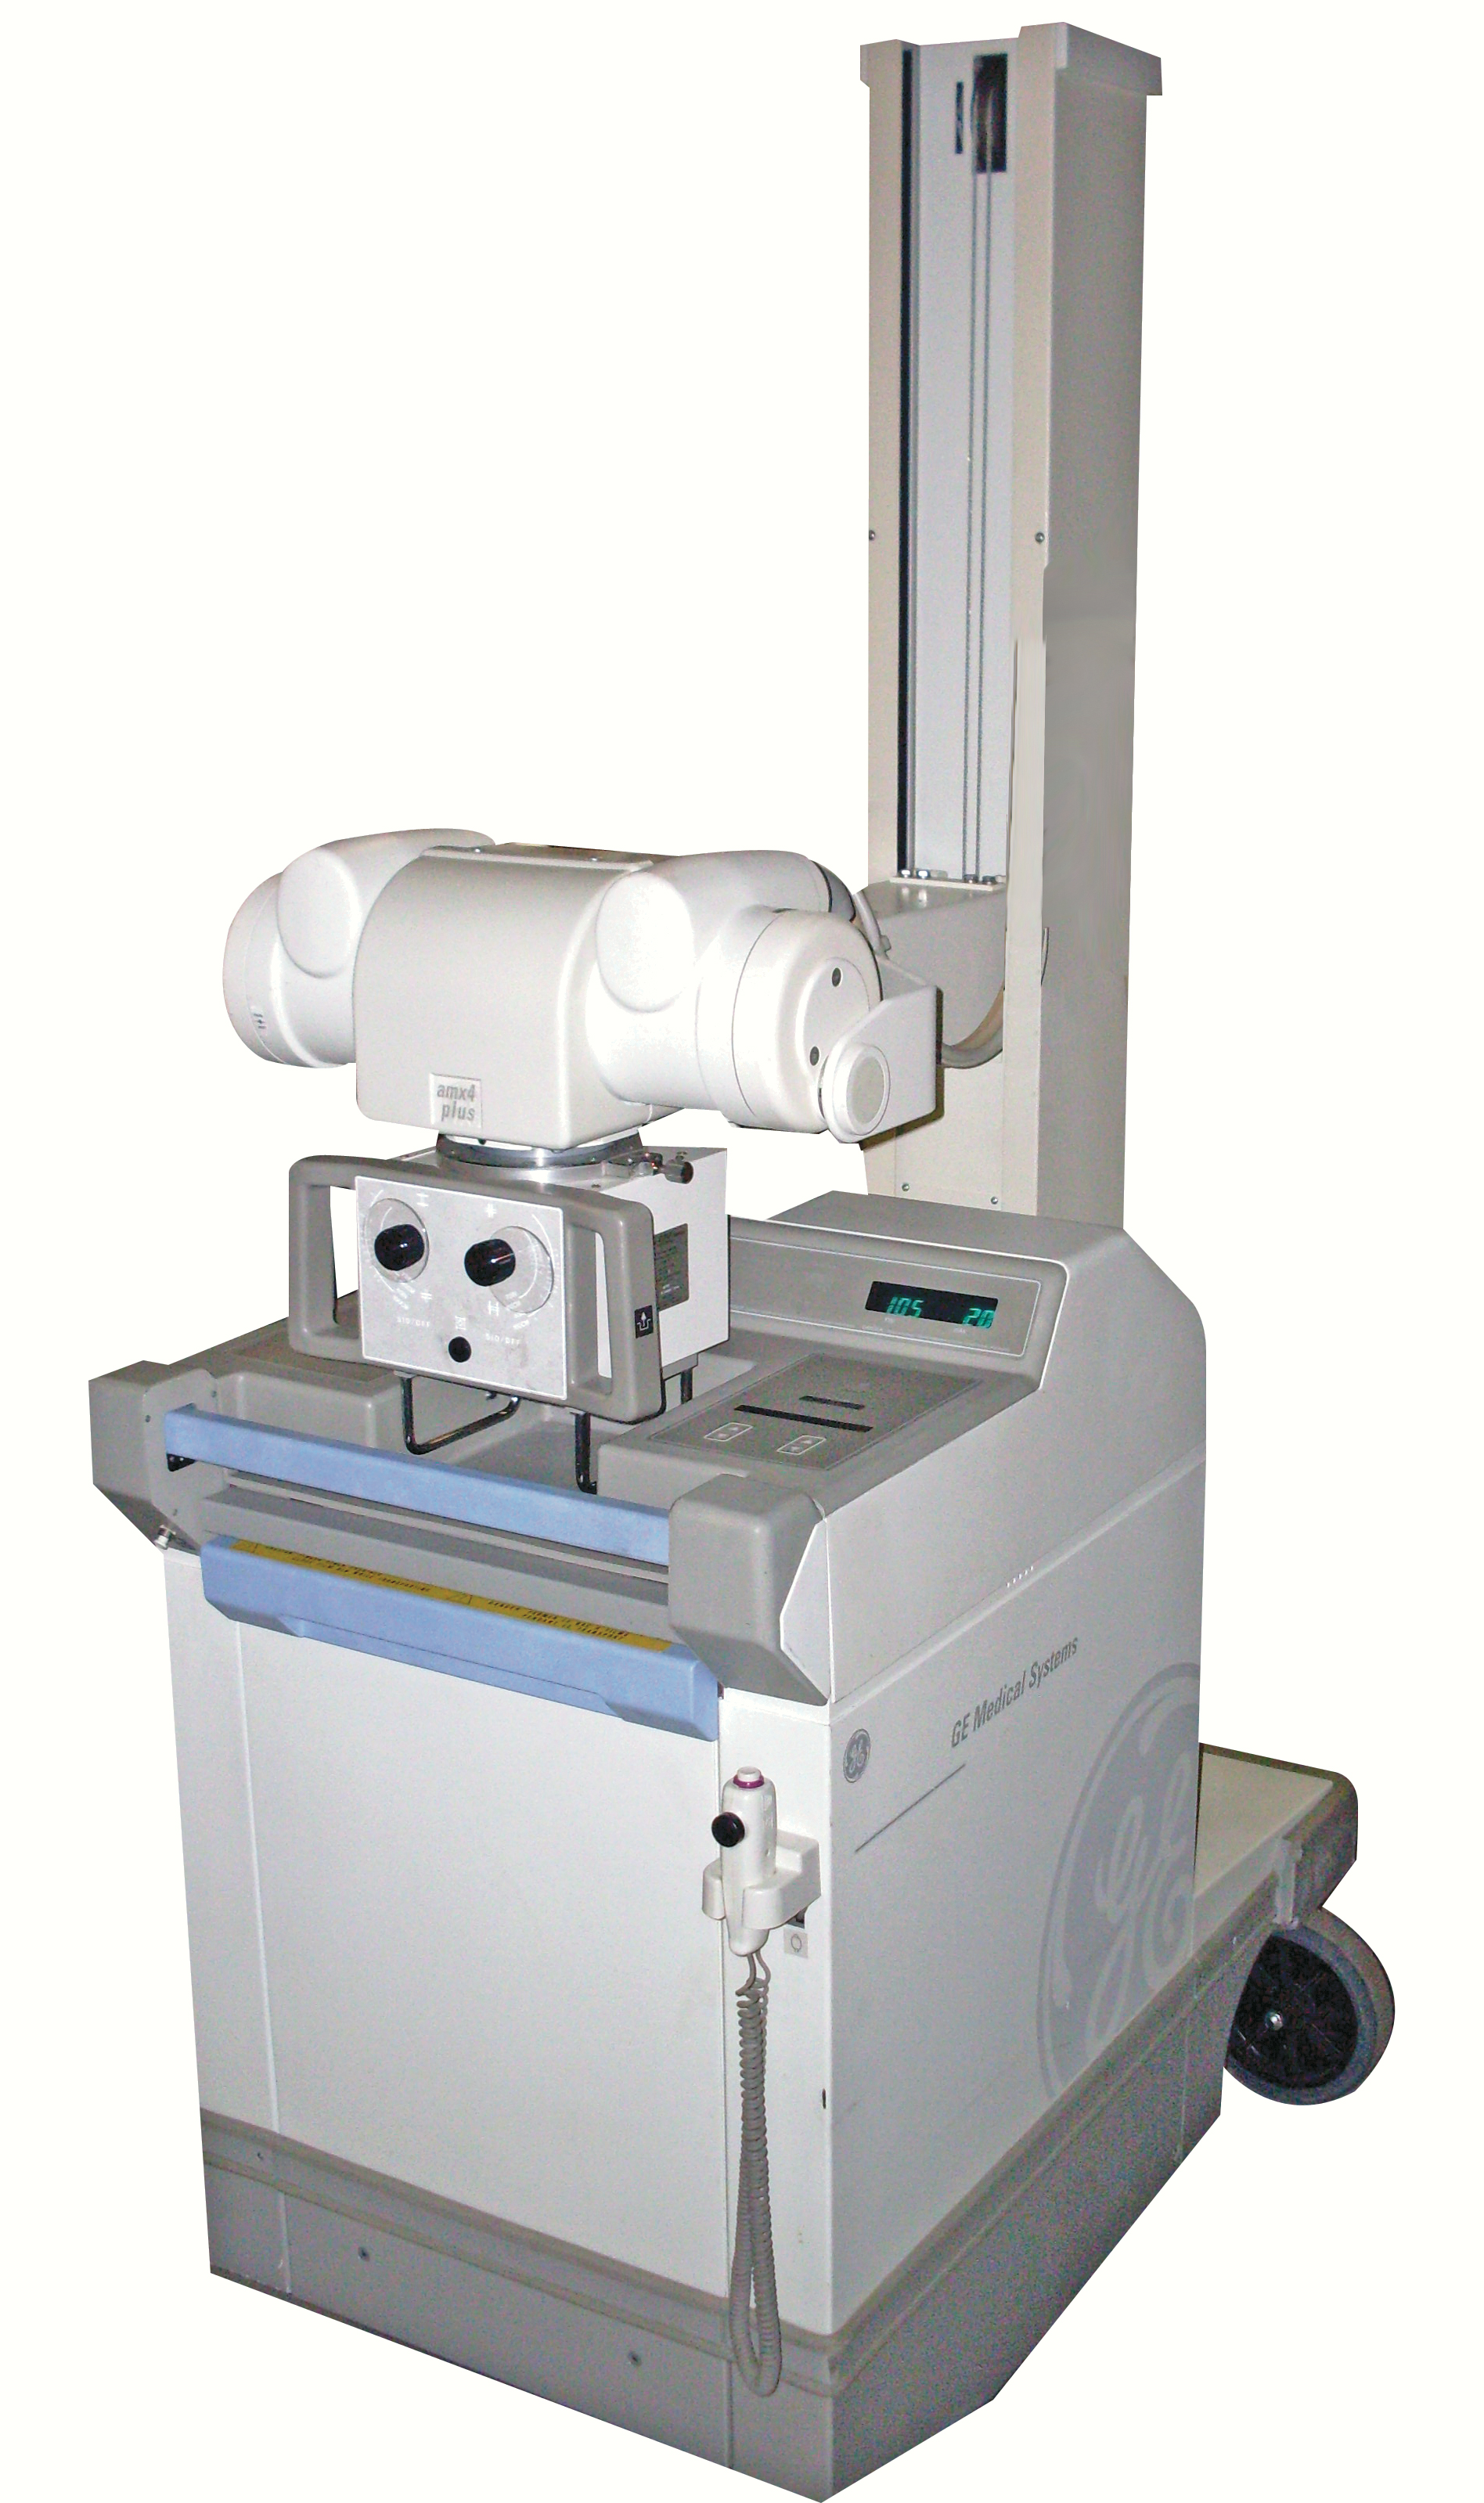 GE AMX IV Portable X-ray